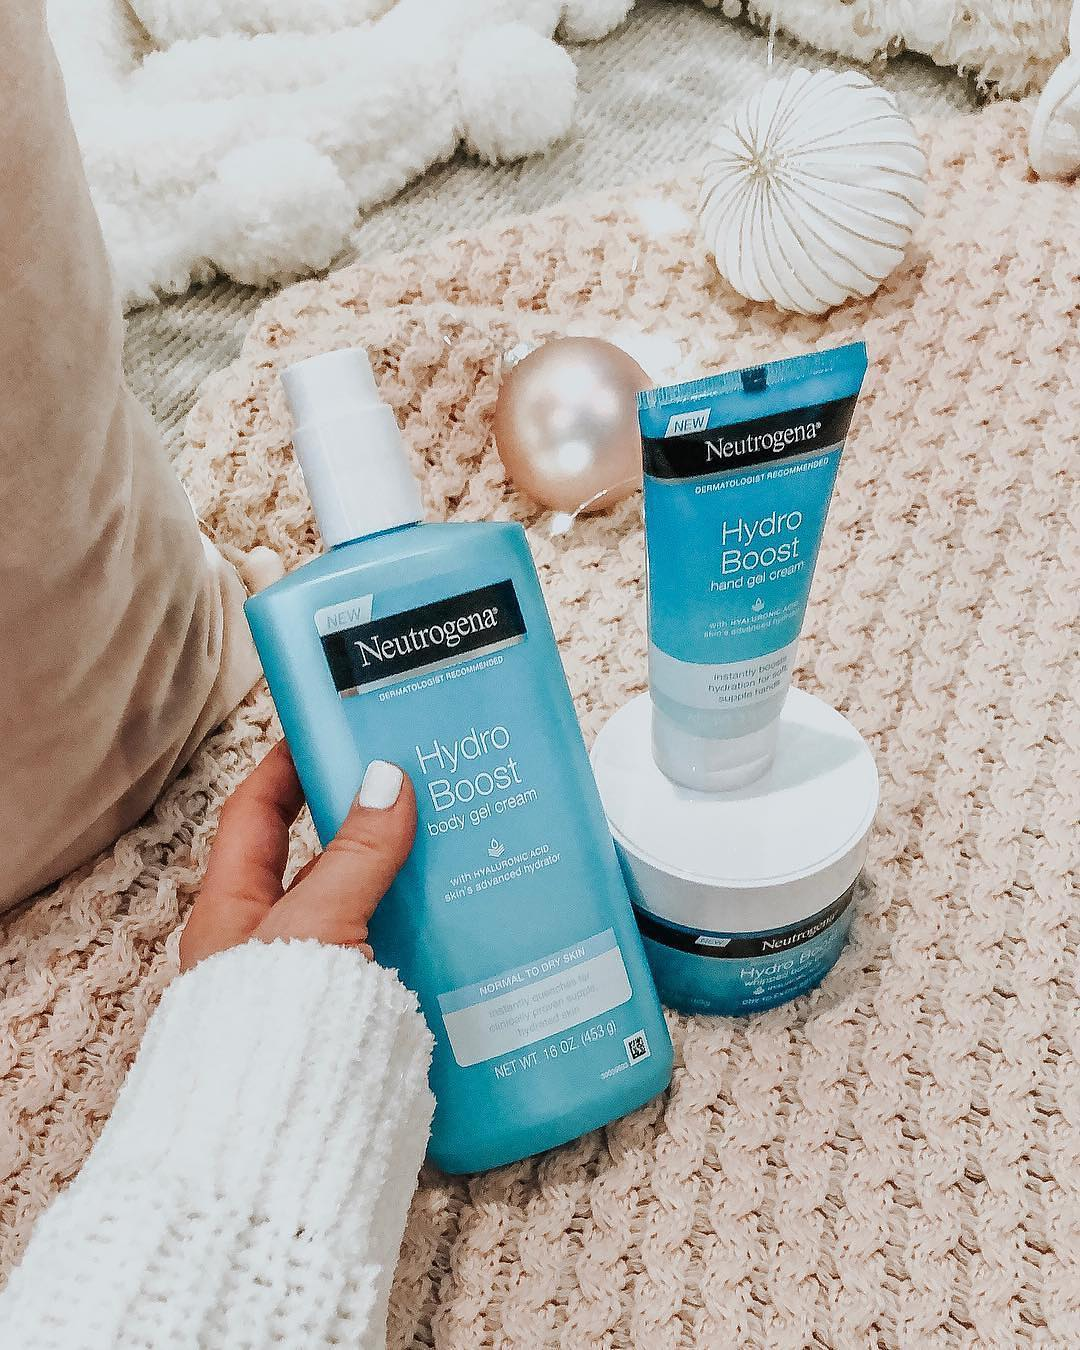 beauty-products-makeup-new-launches-2019-Neutrogena